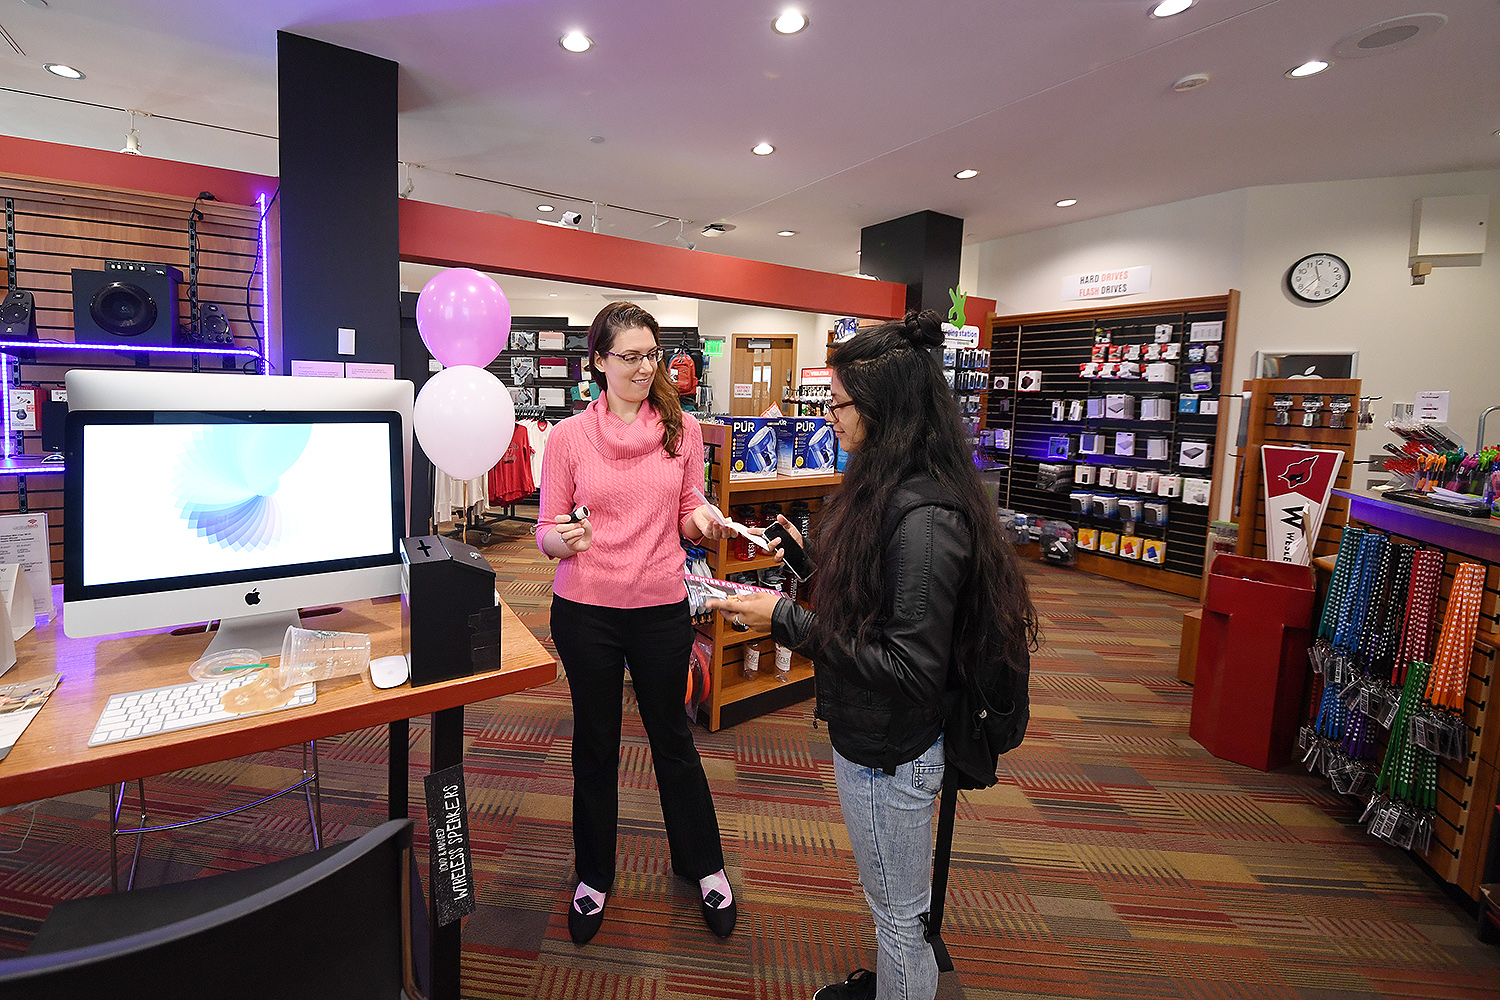 Students browed Wesleyan's campus store, Cardinal Tech, during the open house.